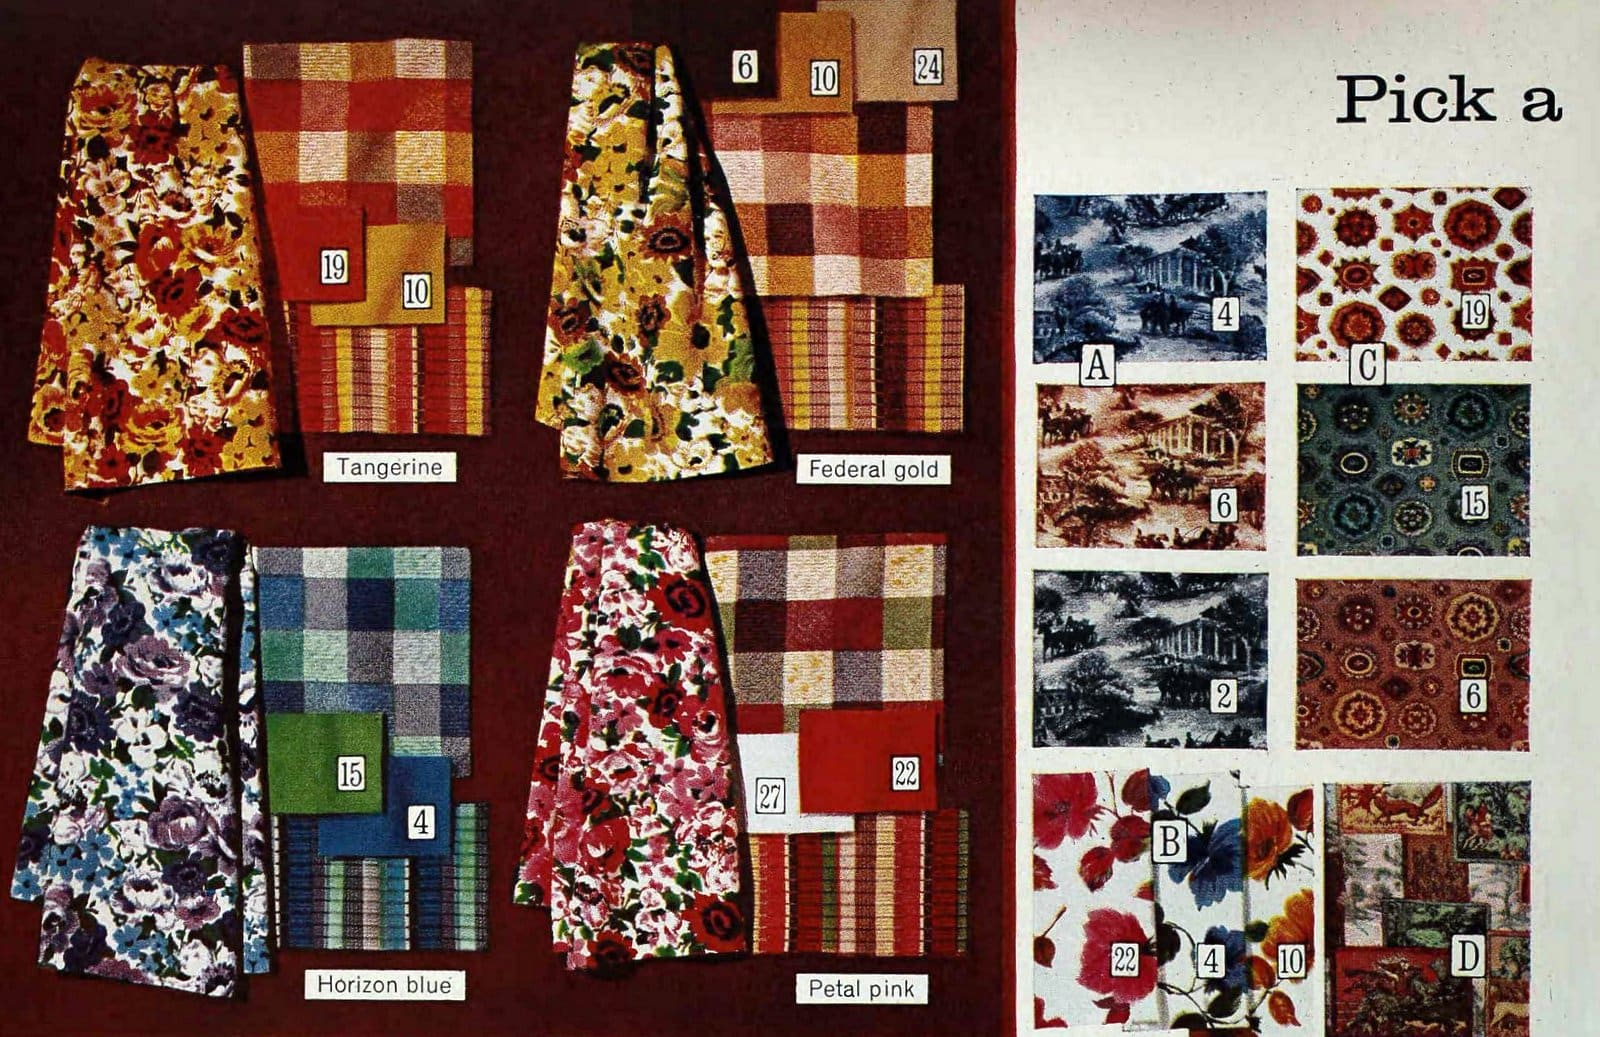 Vintage decorating fabric patterns from Sears in 1965 (2)